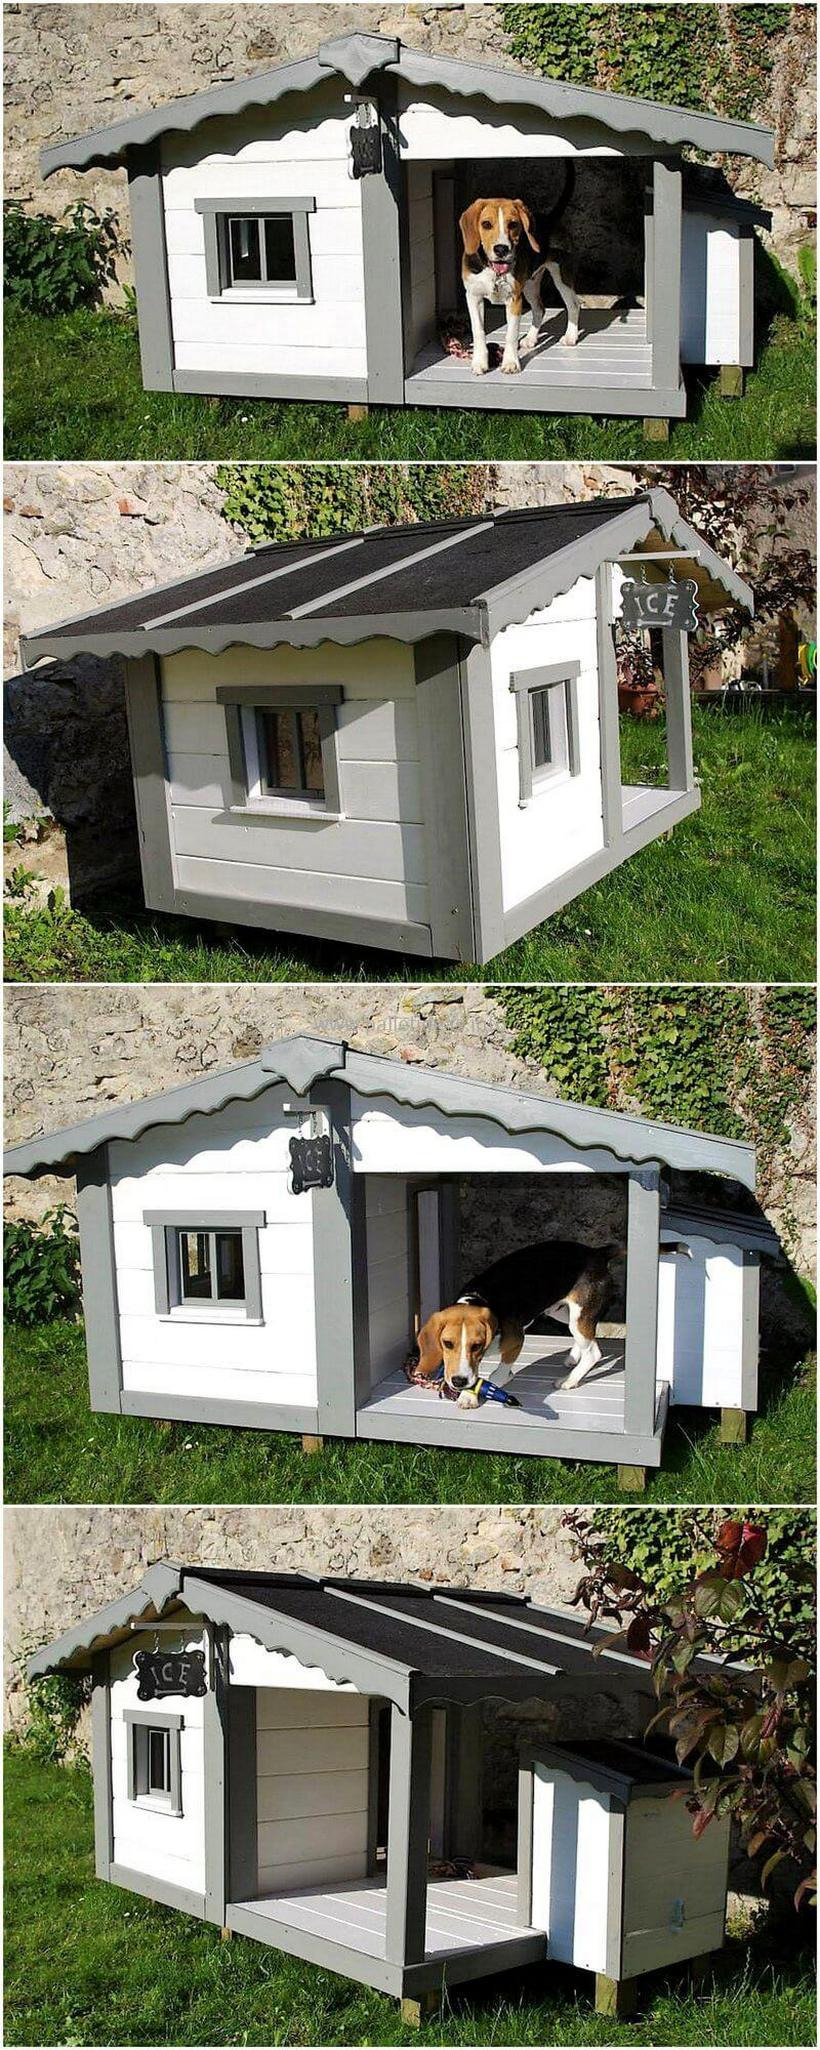 Plans for Dog House Luxury 80 Super Diy Ideas for Wood Pallet Dog Houses